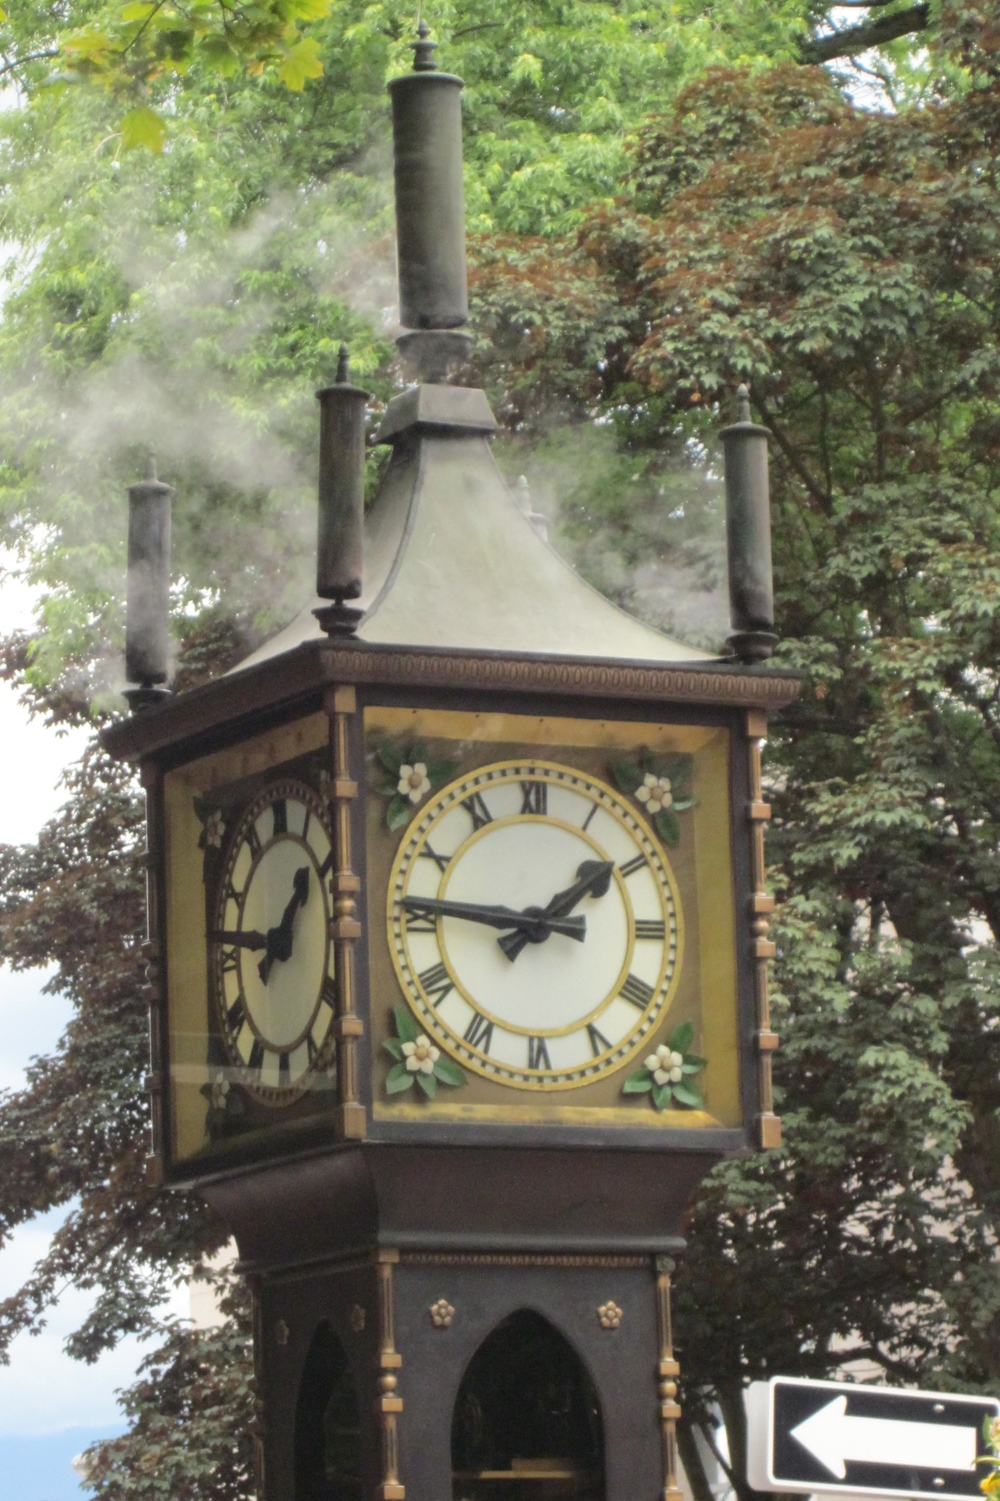 The Gastown Steam clock.